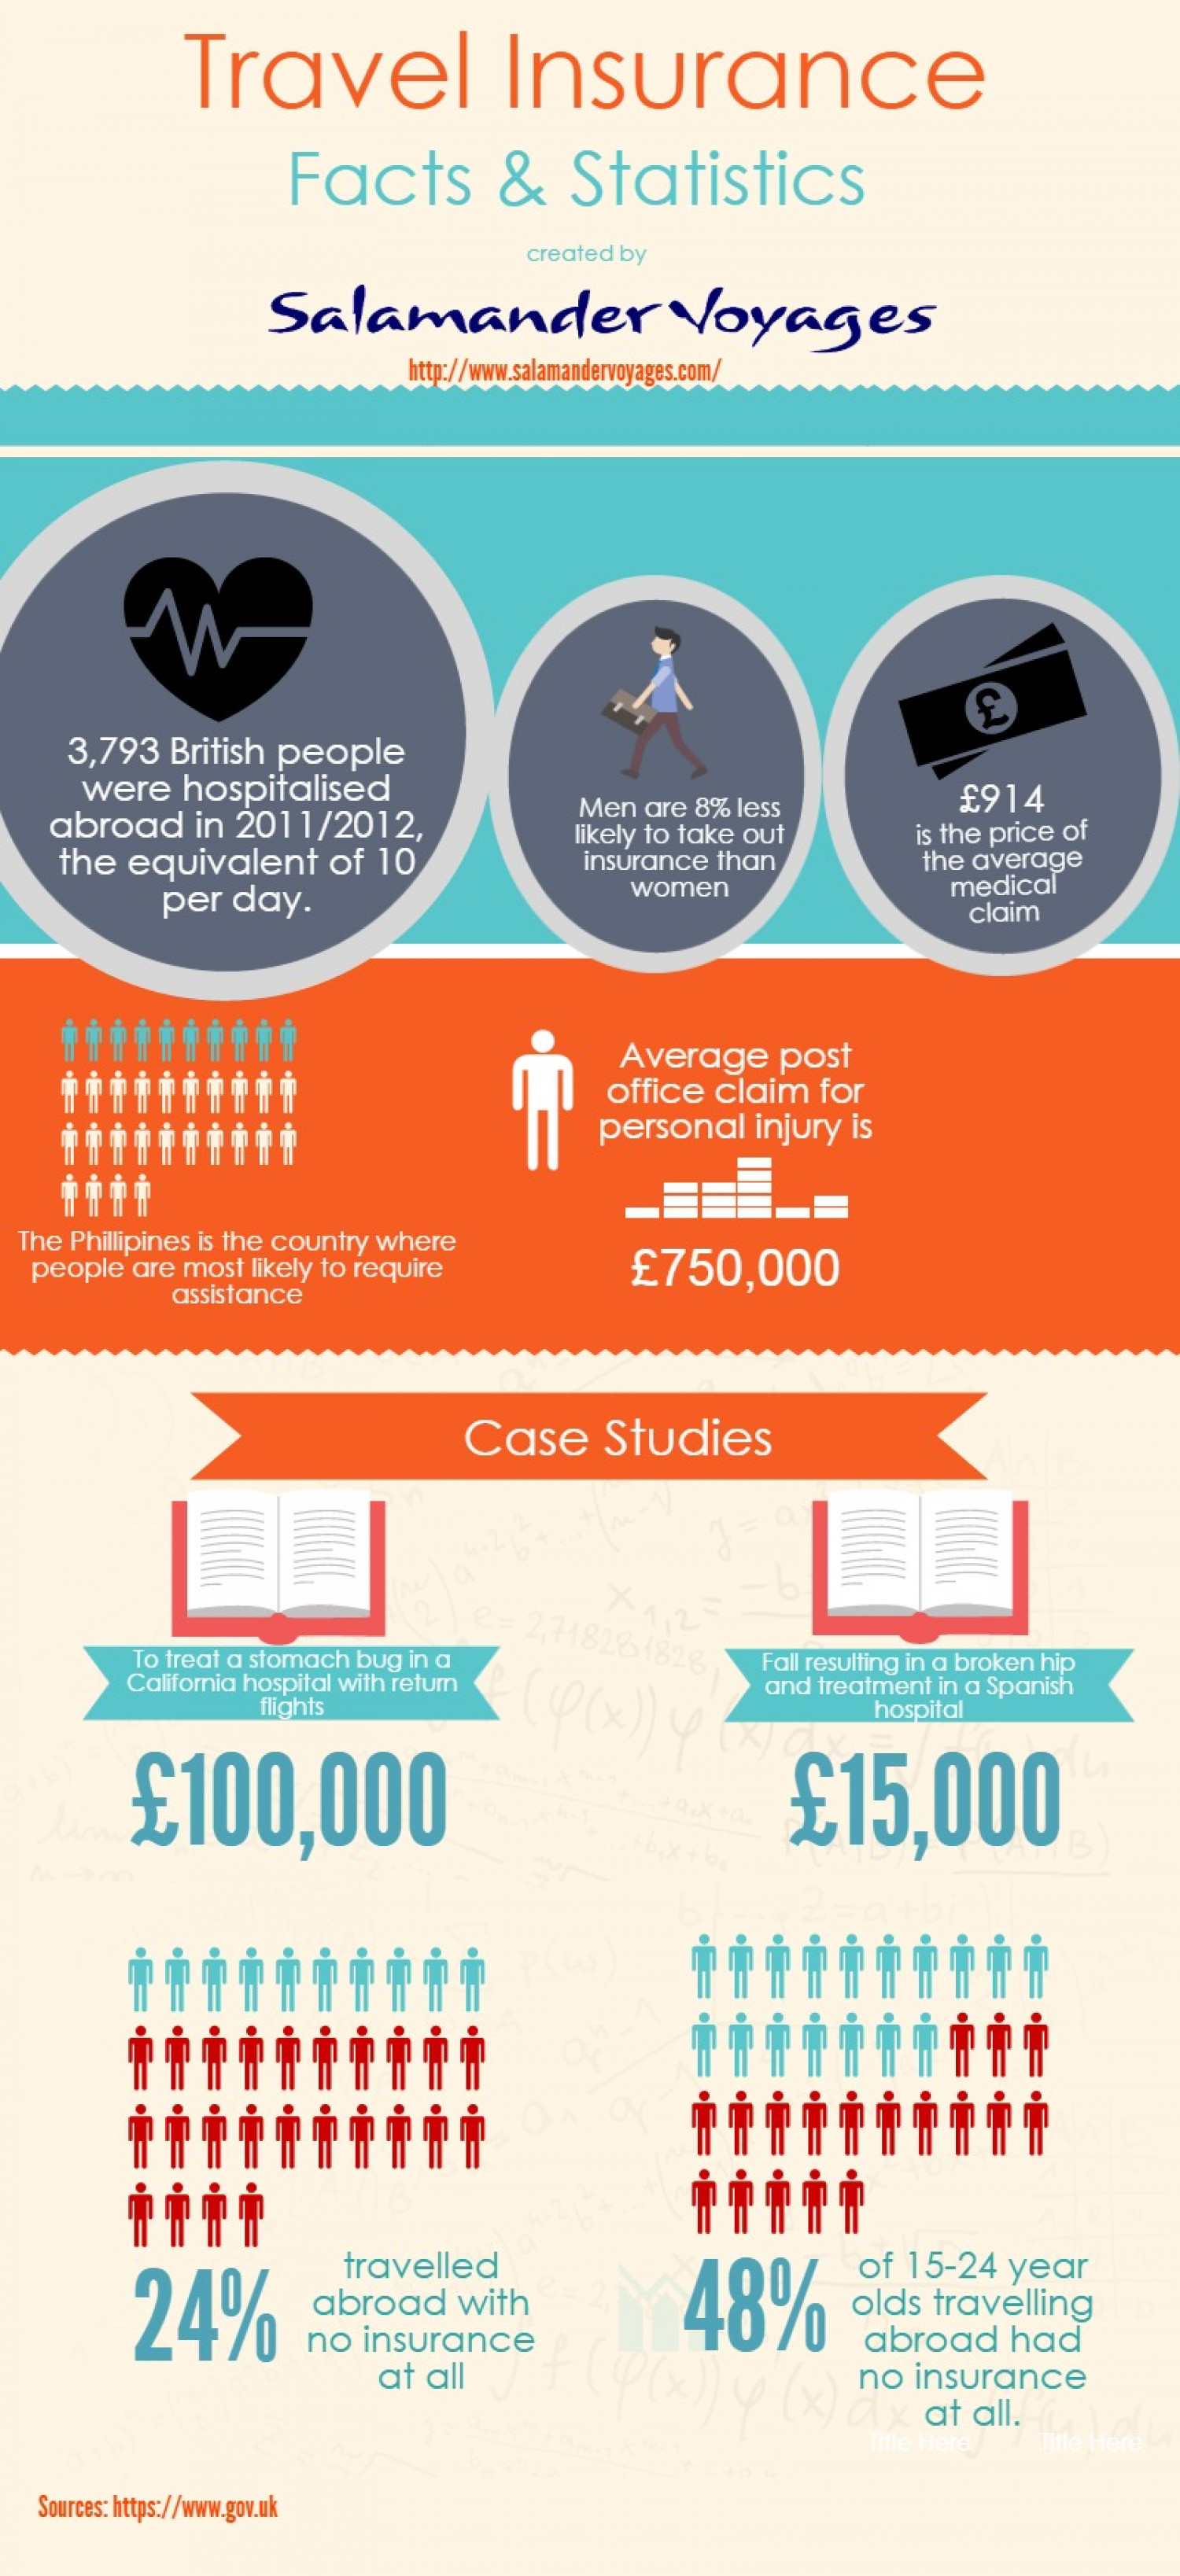 Travel Insurance Facts & Statistics Infographic